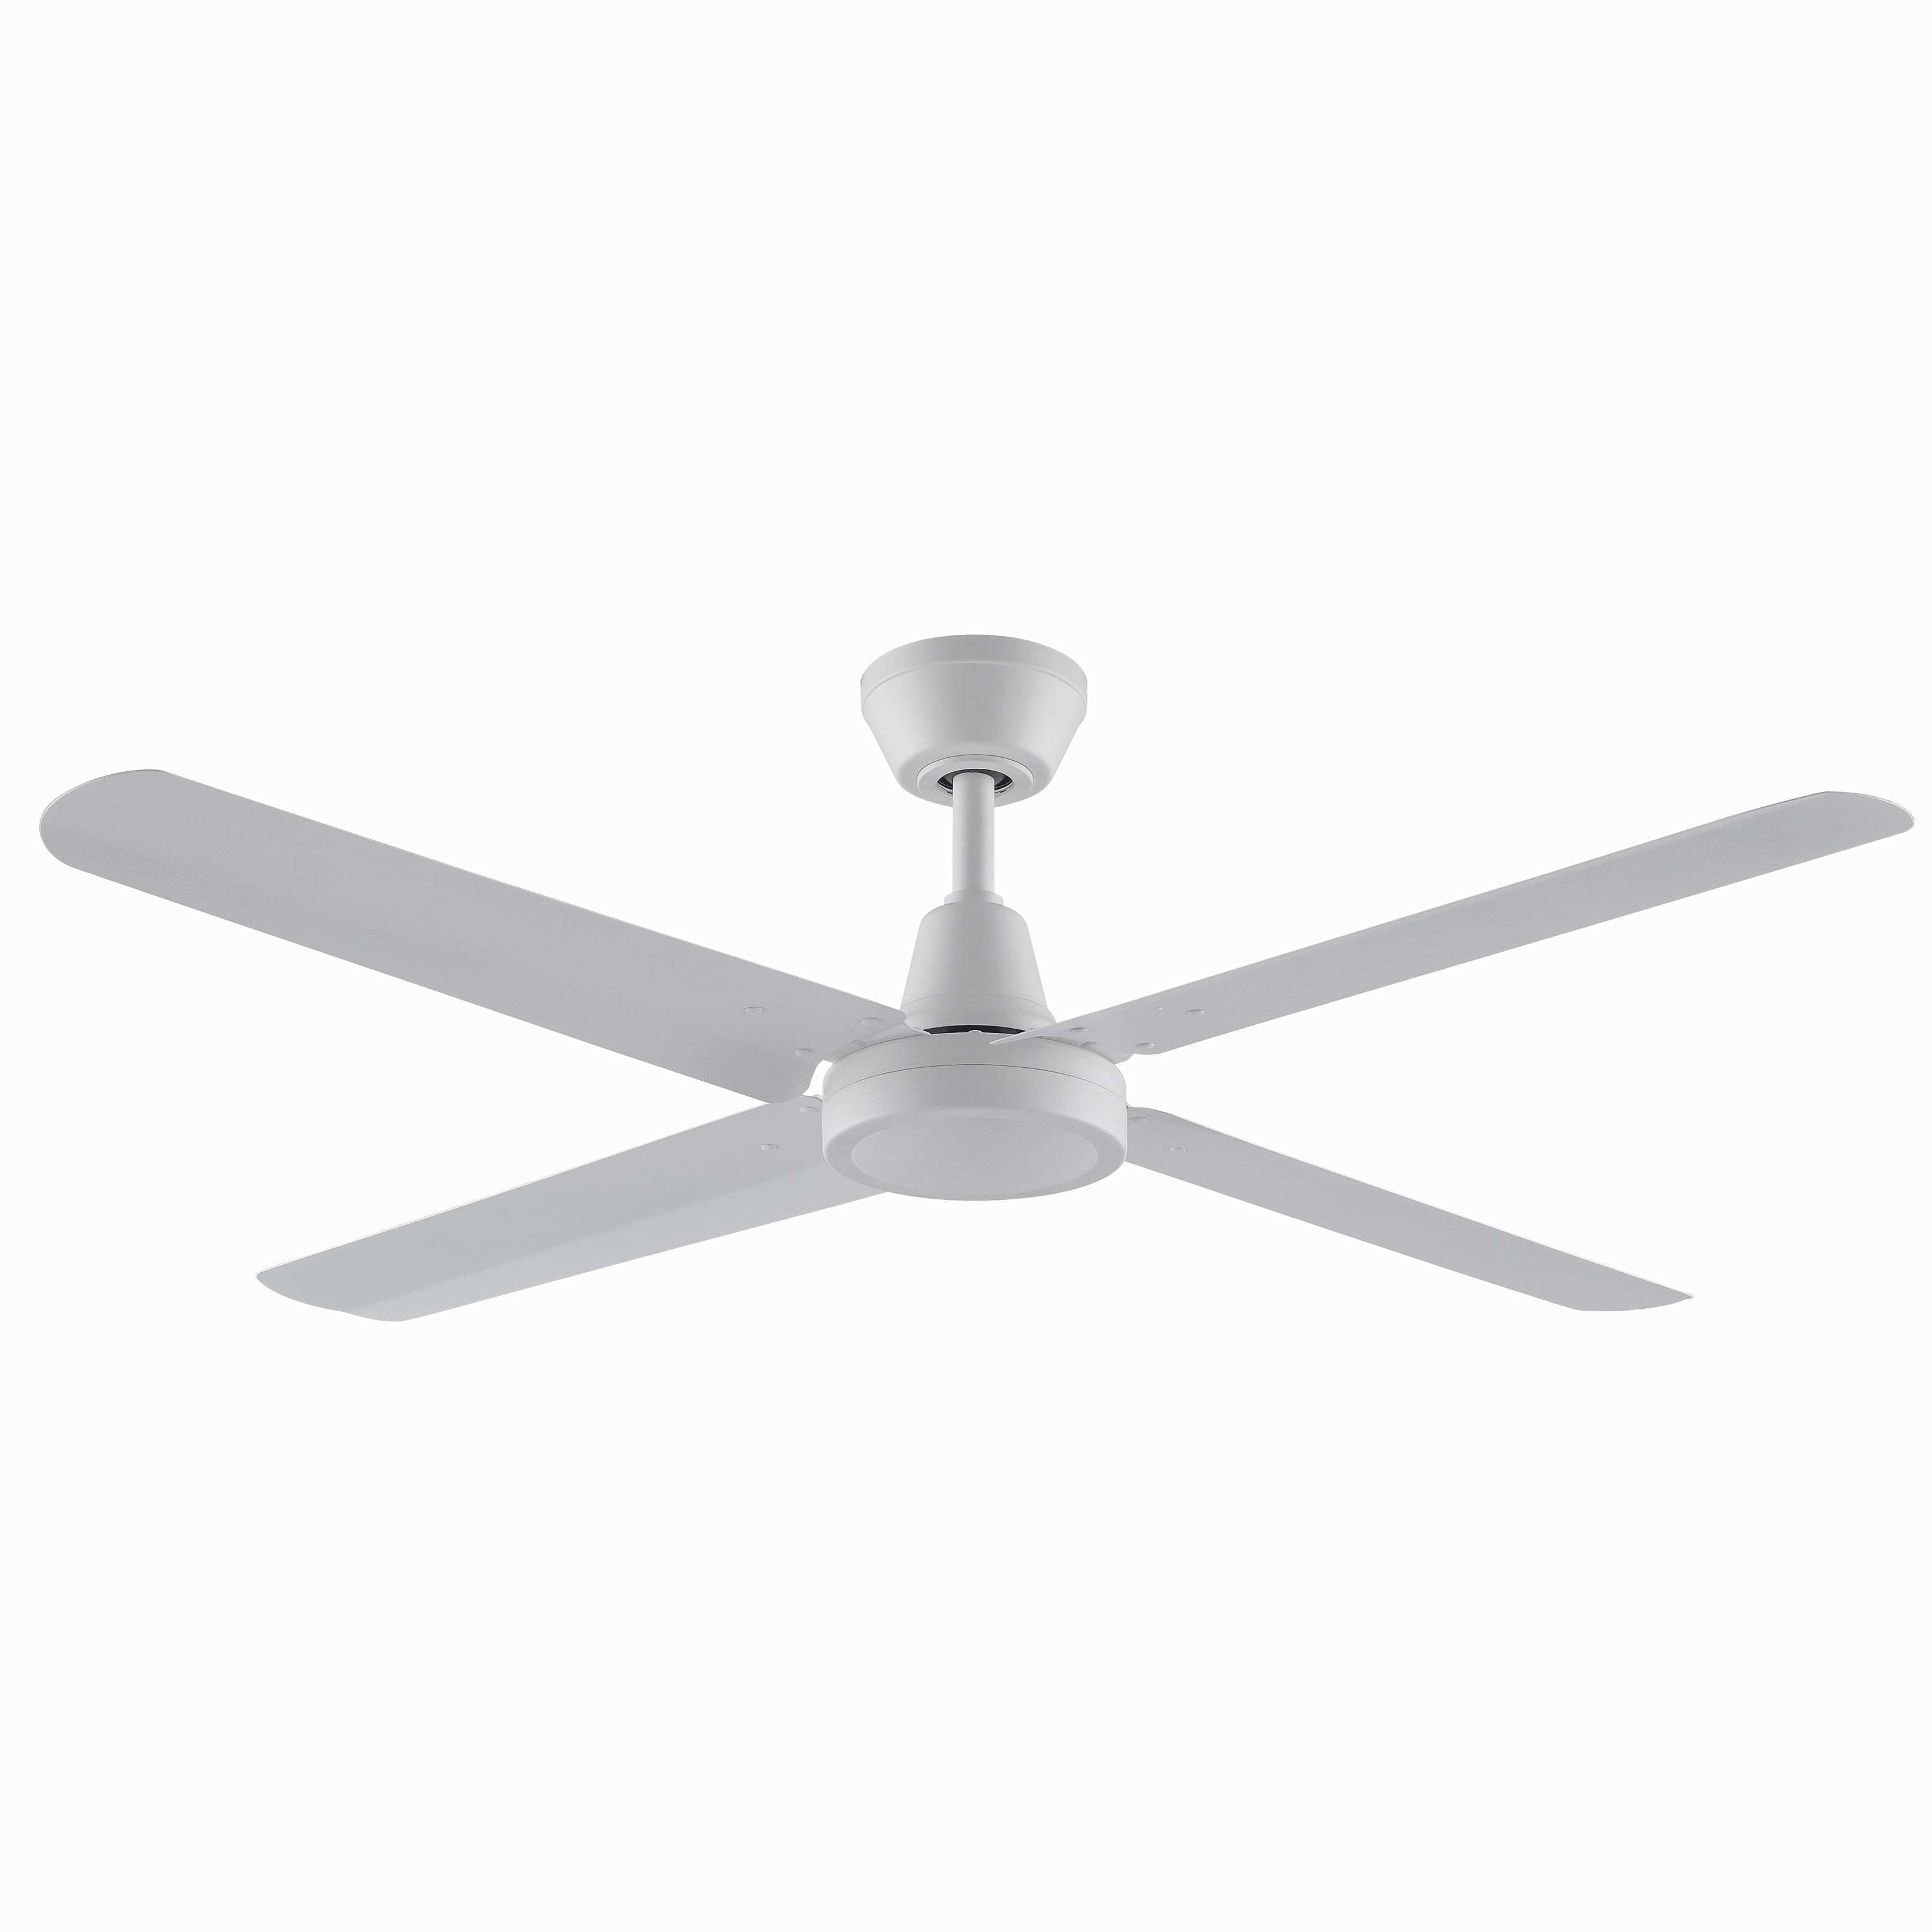 2018 Commercial Outdoor Ceiling Fans With Regard To Commercial Outdoor Ceiling Fans (Gallery 13 of 20)